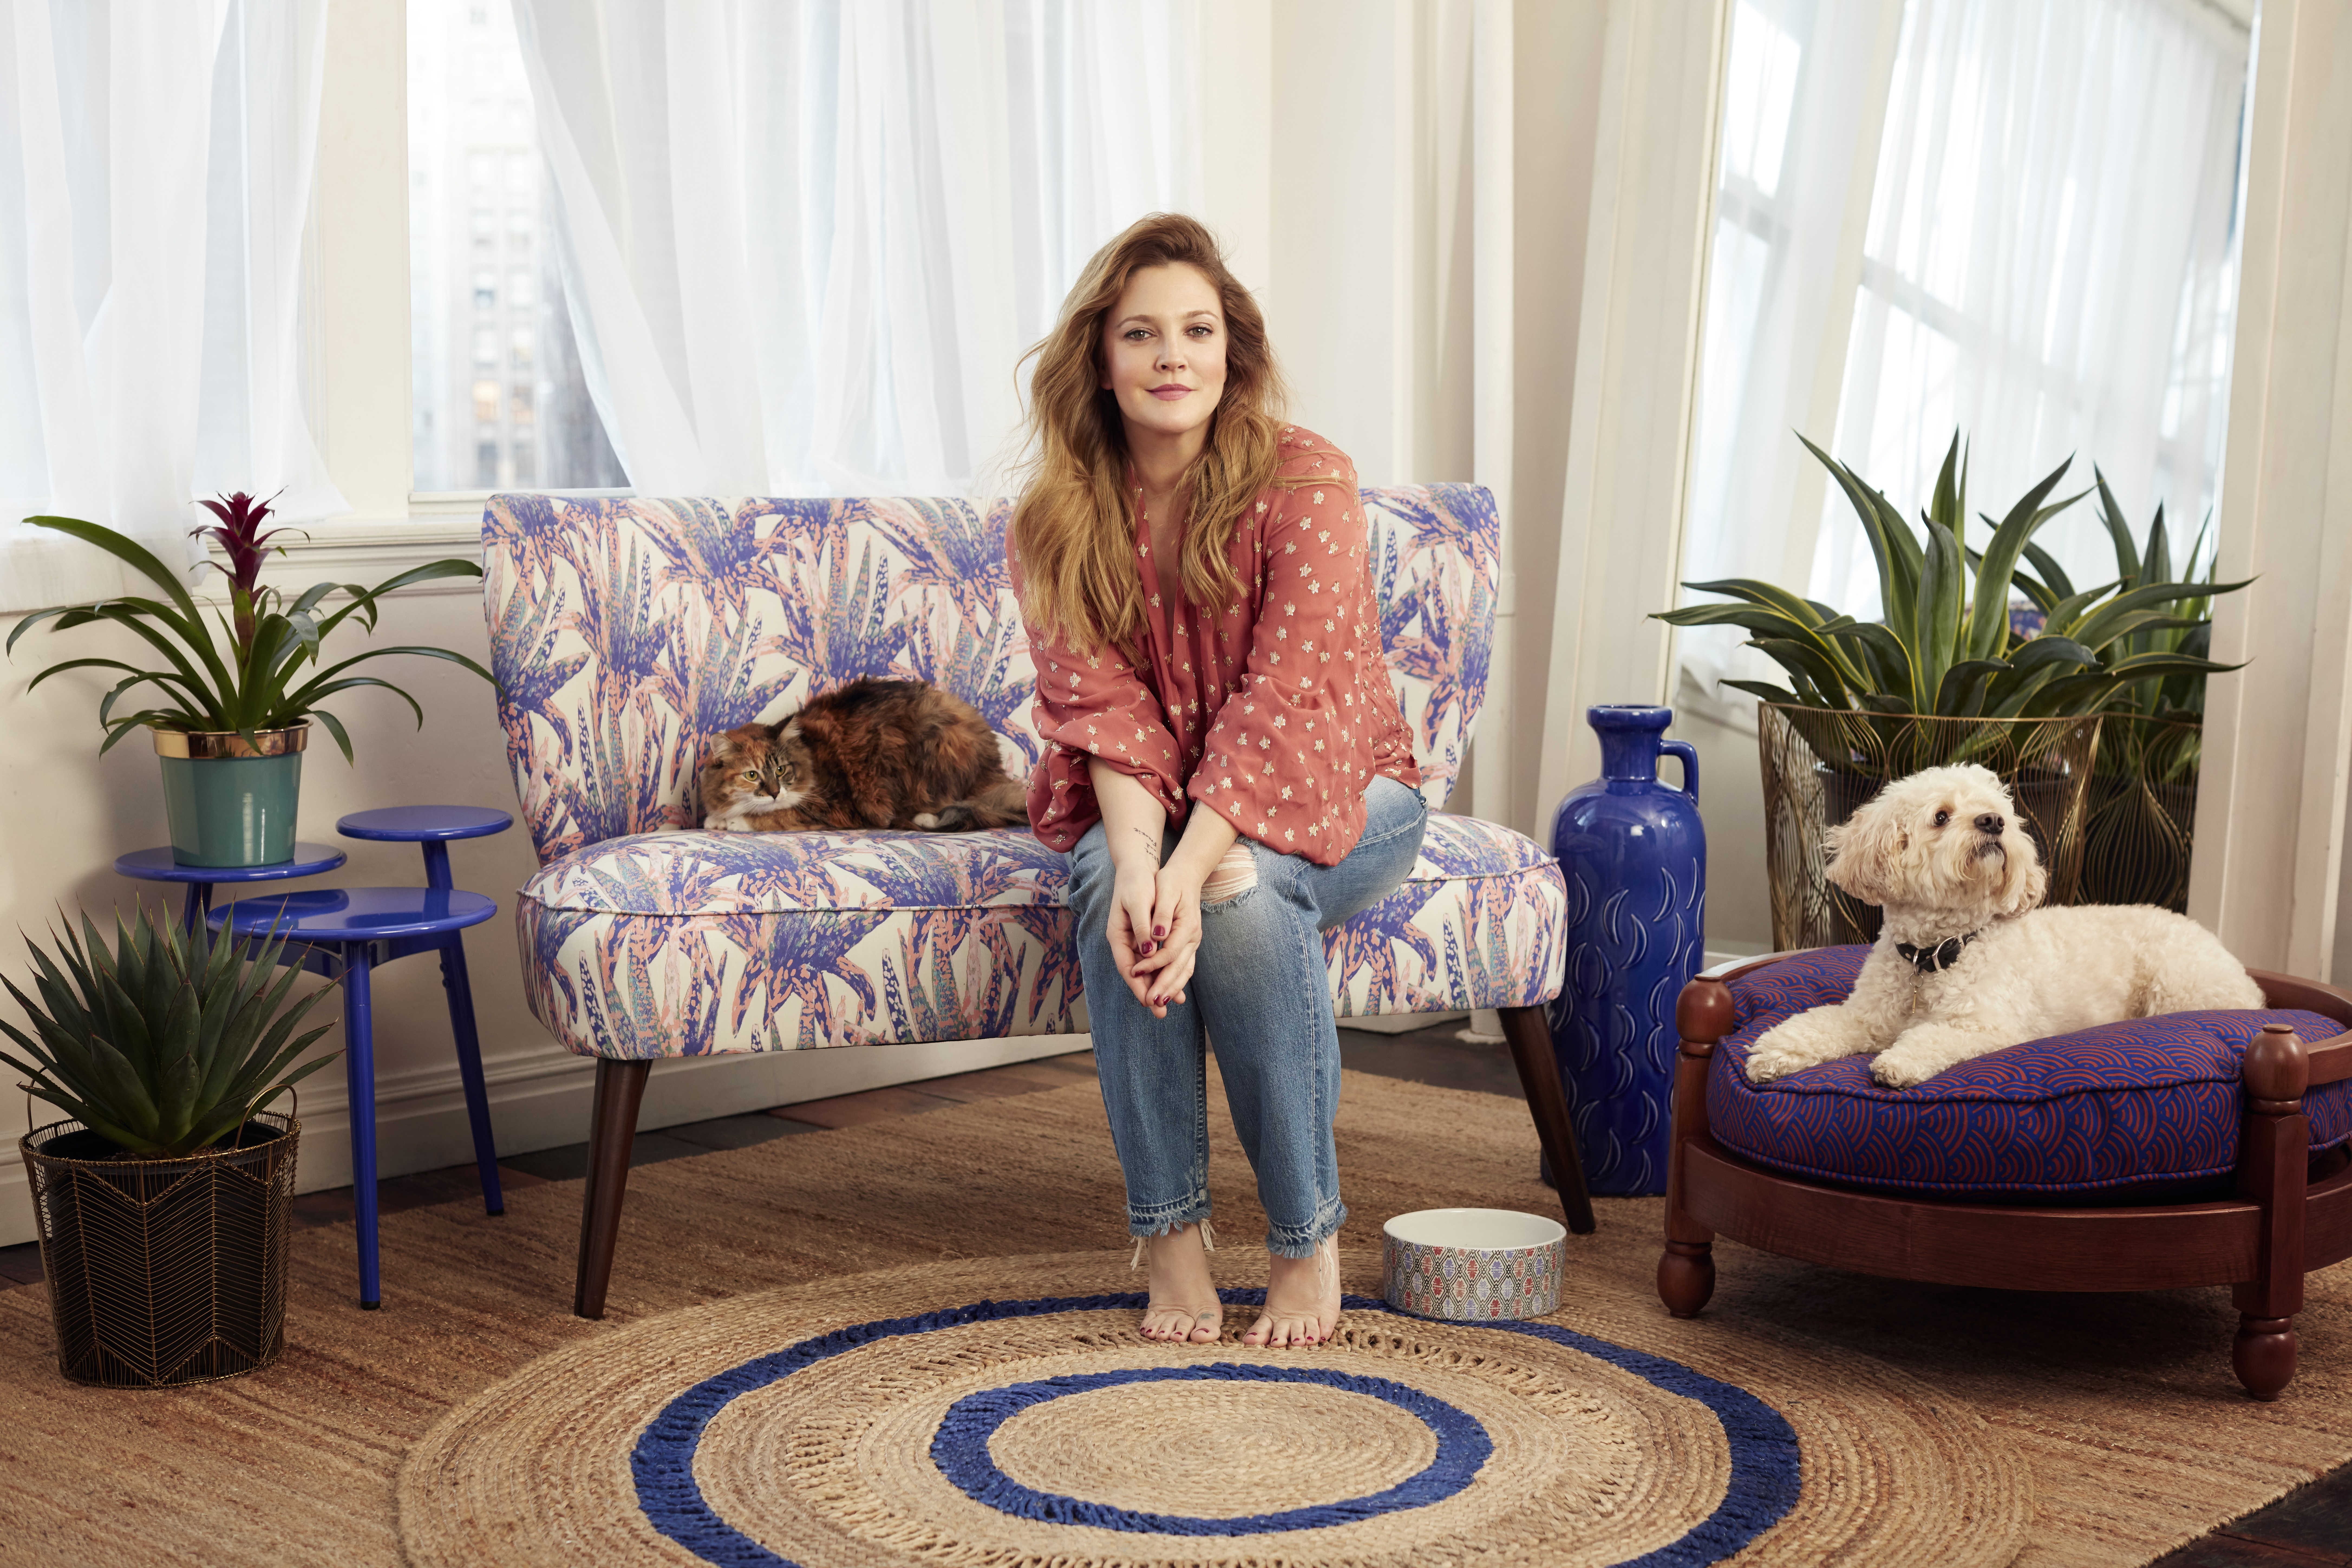 Drew Barrymore poses with items from her new Flower Home collection